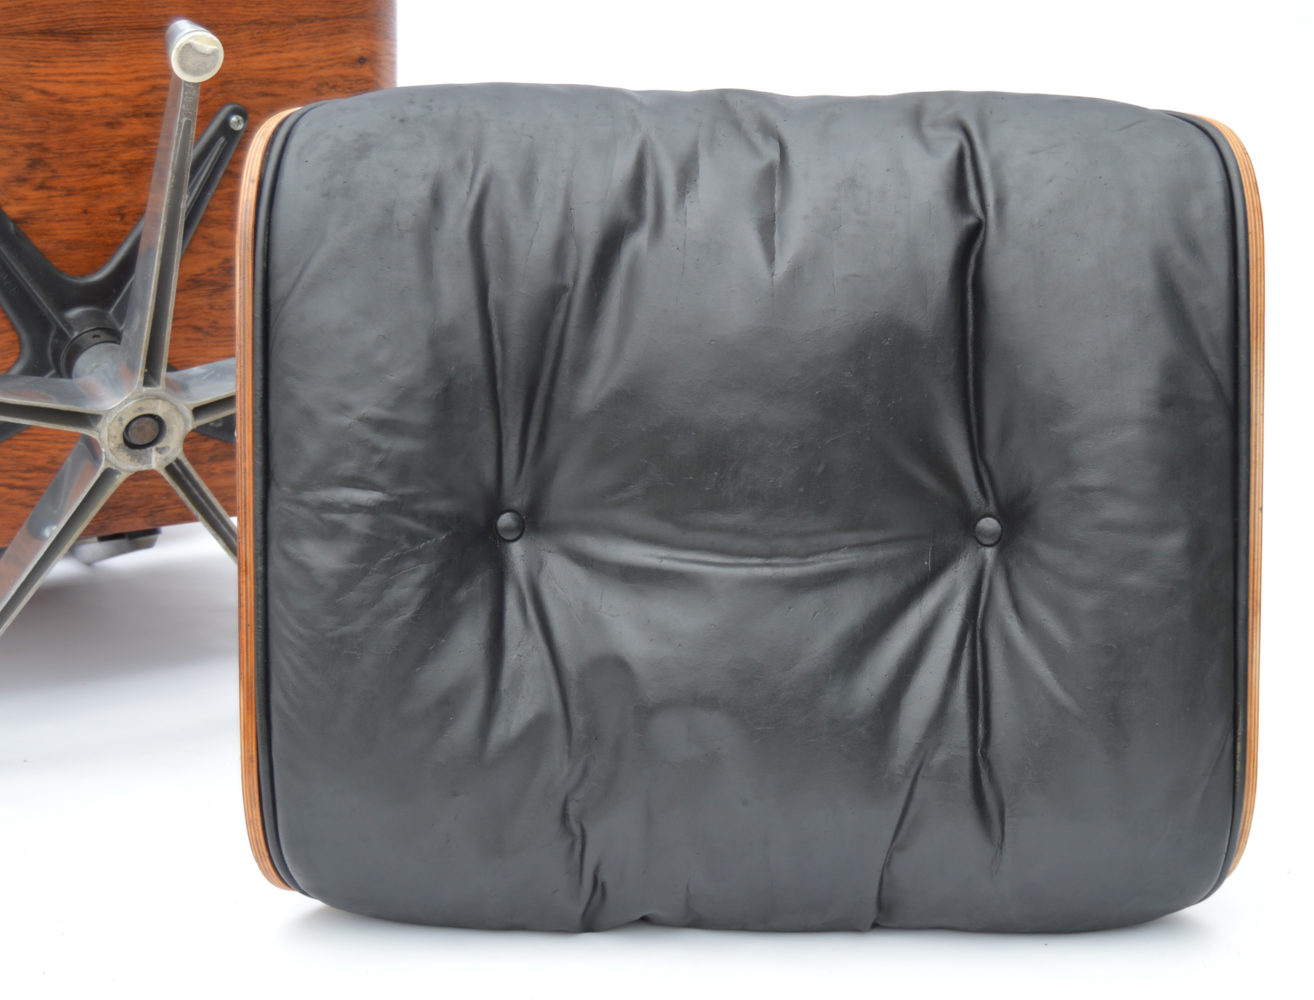 Eames Lounge Chair by ICF for Herman Miller / Vitra